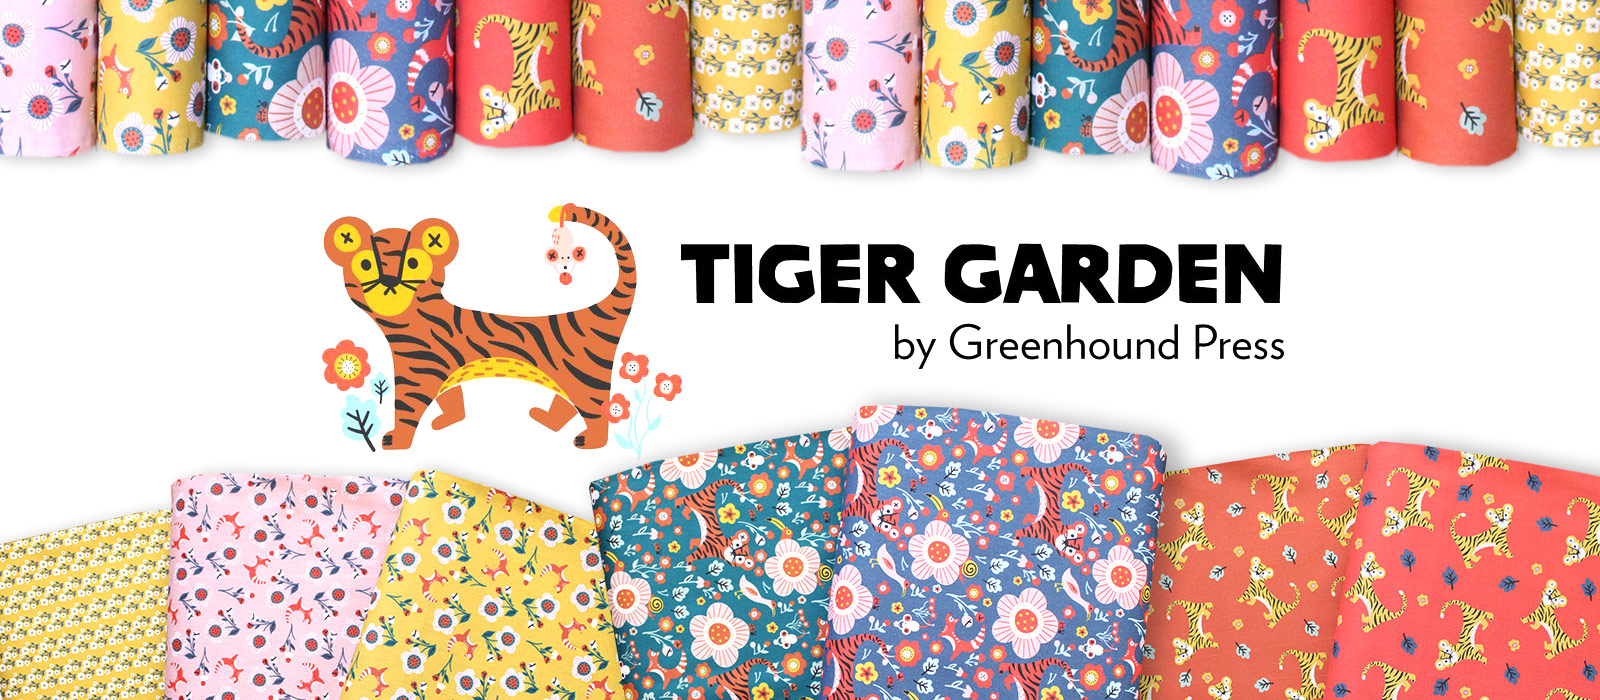 Paintbrush Studio Fabrics Tiger Garden Collection by Green Hound Press